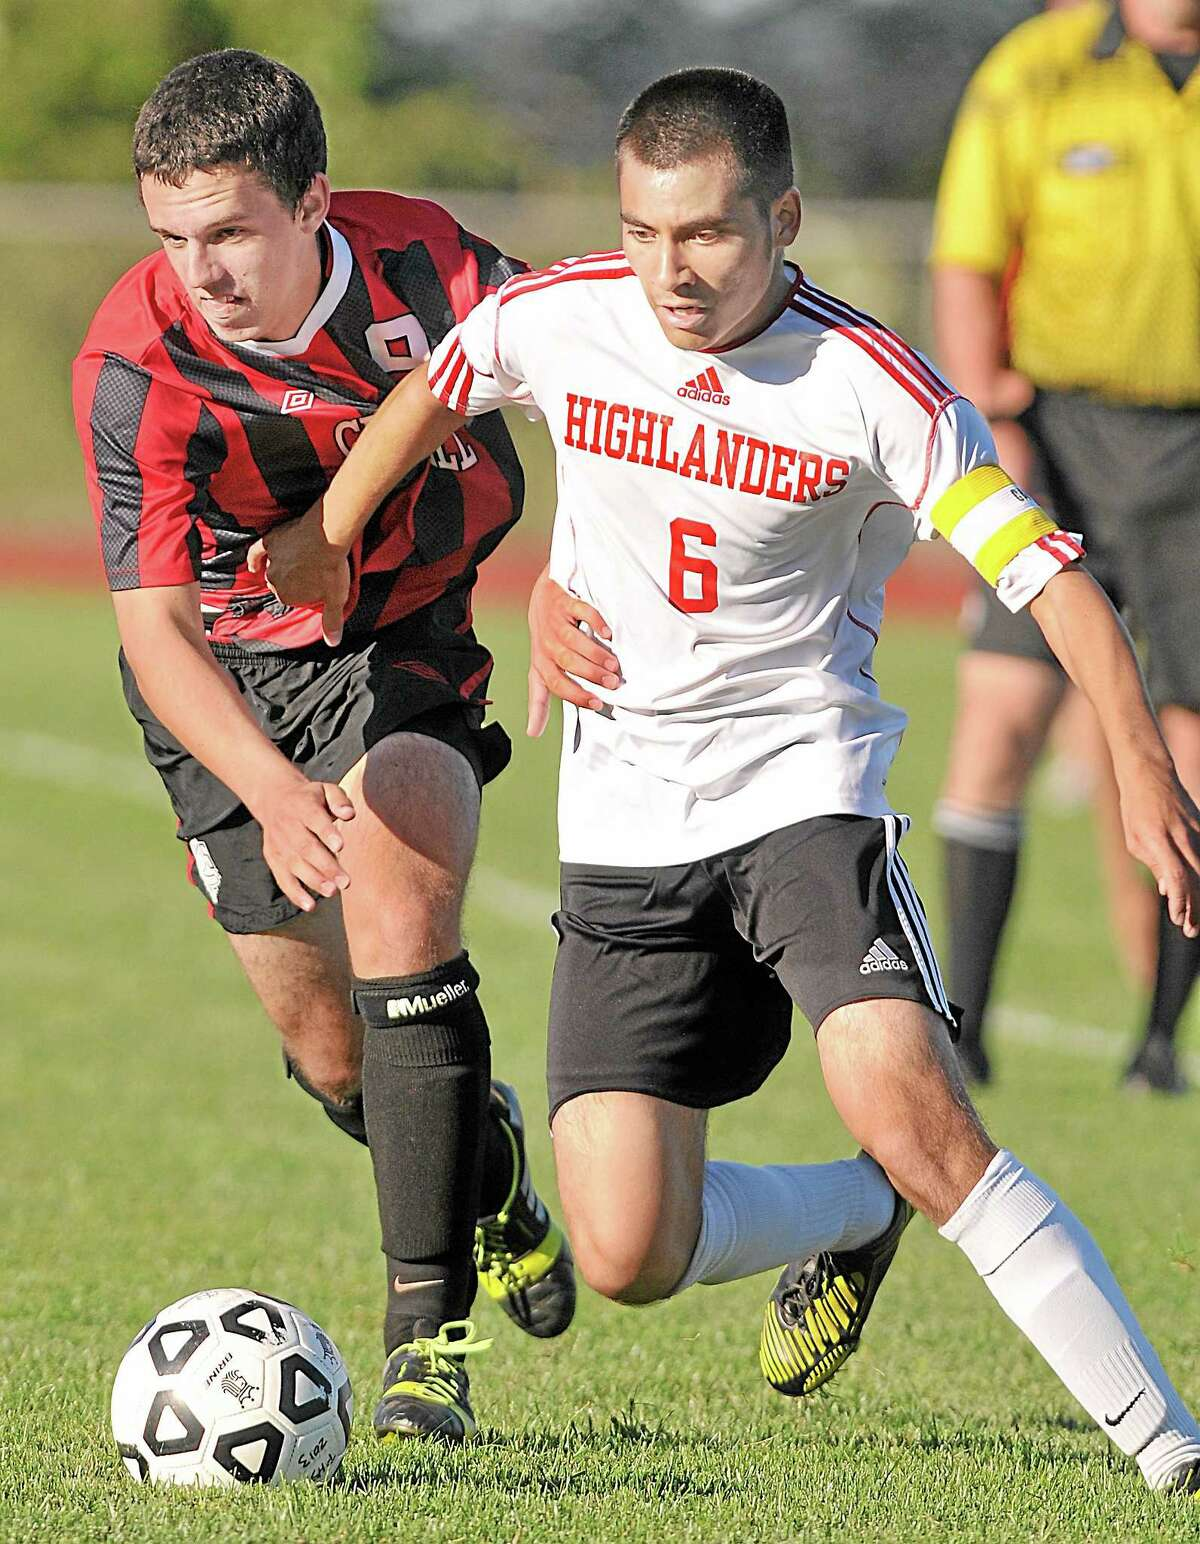 Portland forward captain Abner Velasco battles Cromwell's Derek Parker at midfield Tuesday afternoon. Parker had one goal and one assist leading the Panthers to a 4-0 victory on the road.